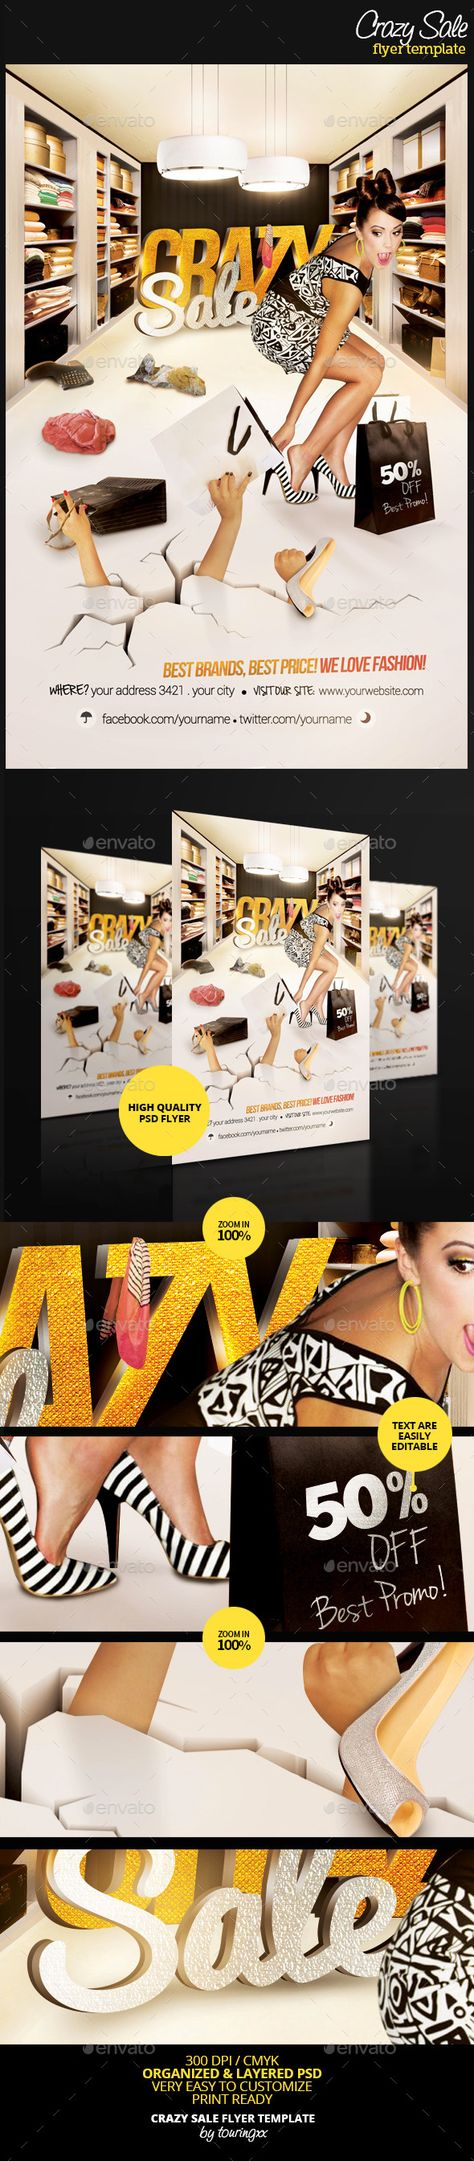 Crazy Sale Flyer Template / $6. ***This flyer is perfect for the promotion of Shops/Boutiques, Sales/Promotions, Fashion Shows, New Collections, Events or Whatever you Want!***.